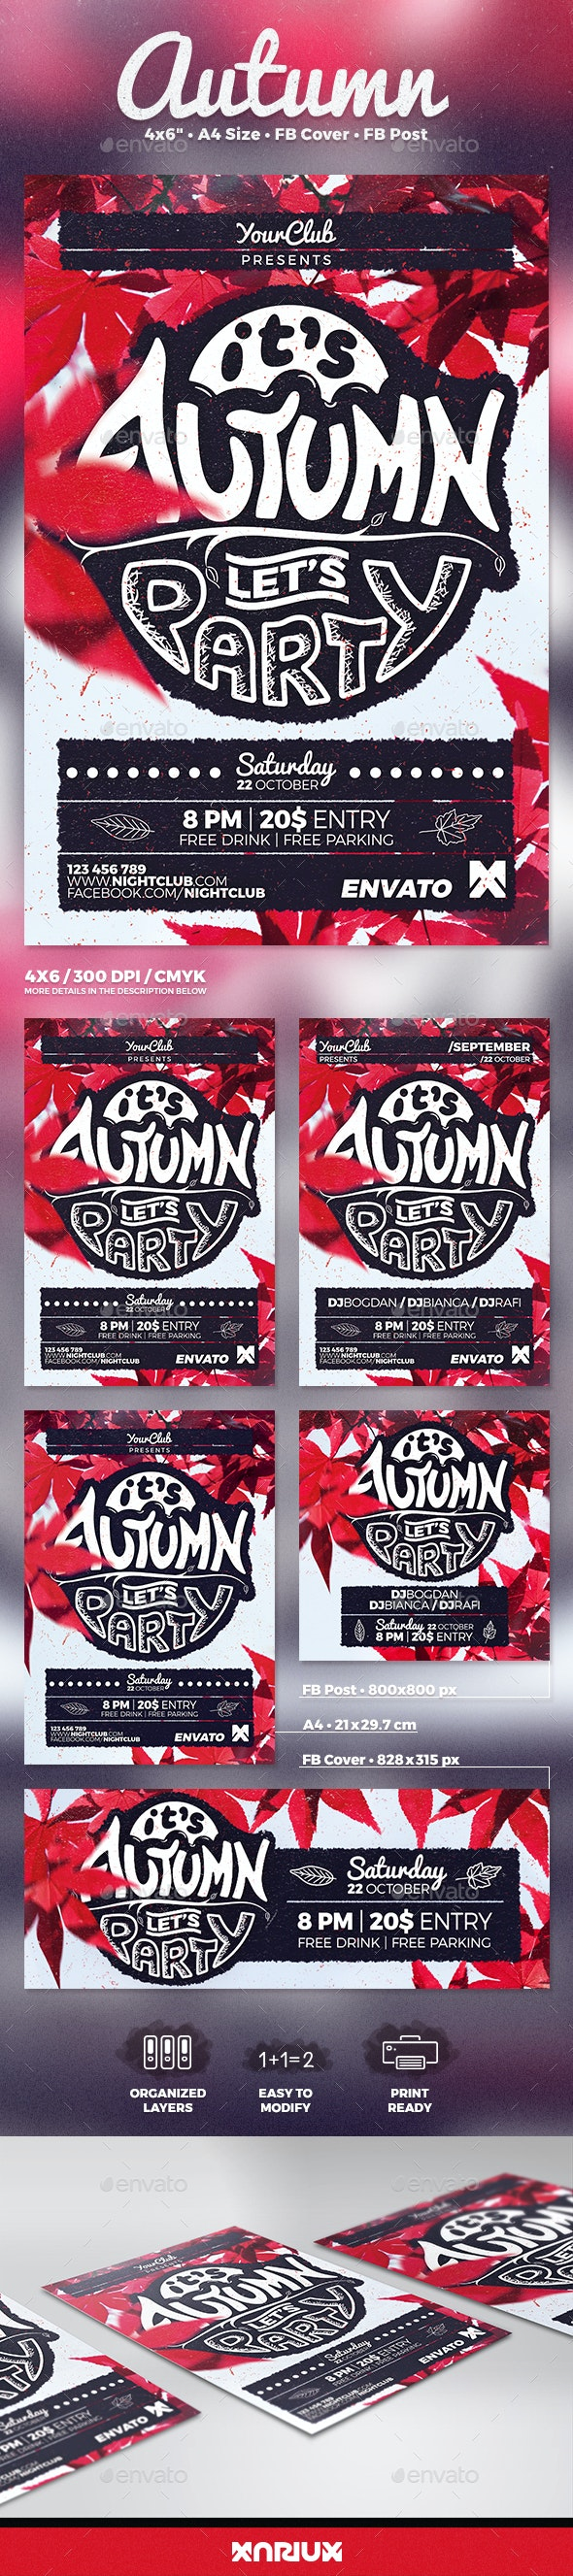 Autumn Party Flyer Poster - Clubs & Parties Events